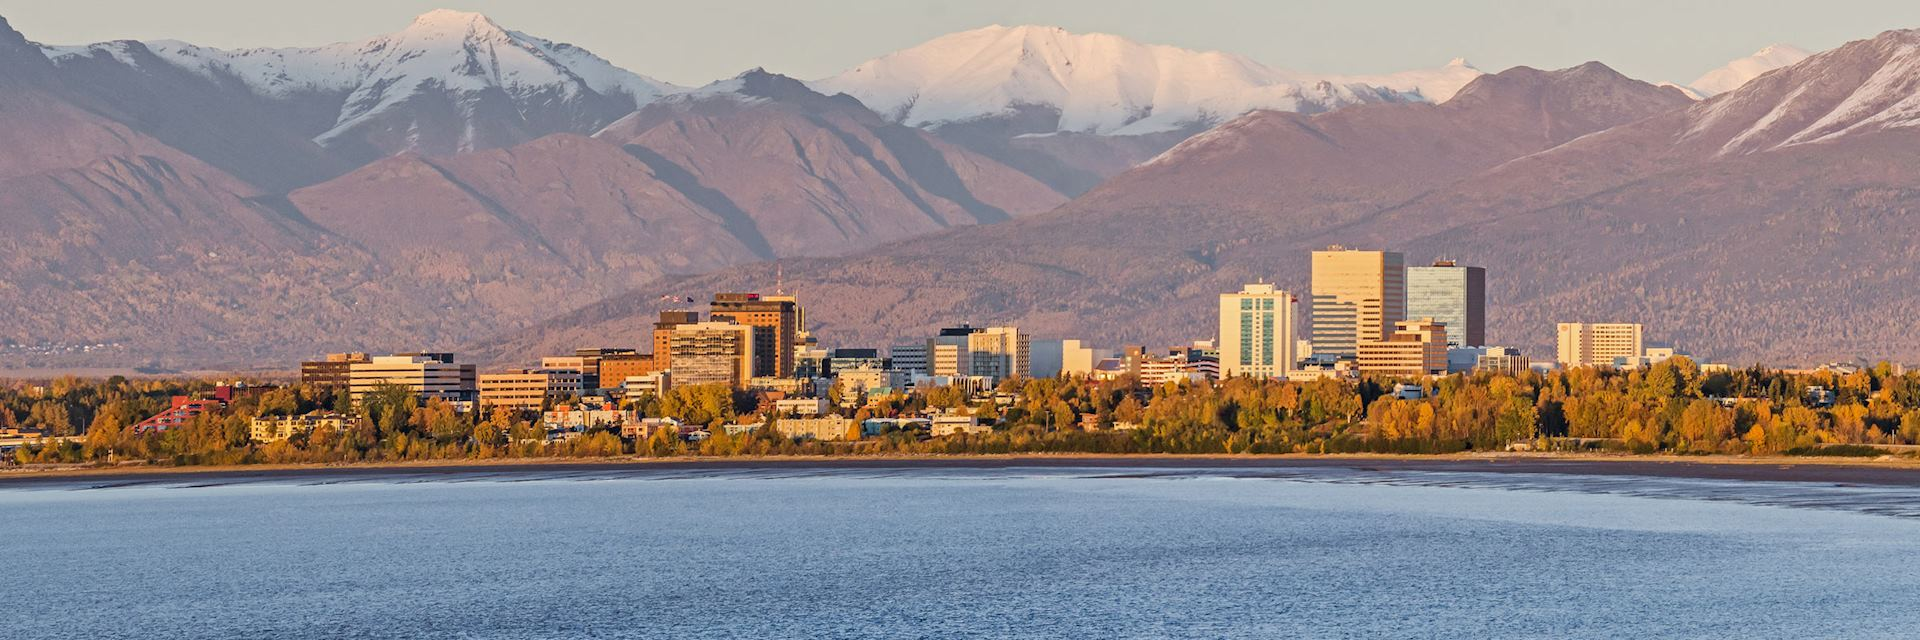 Anchorage skyline, Alaska